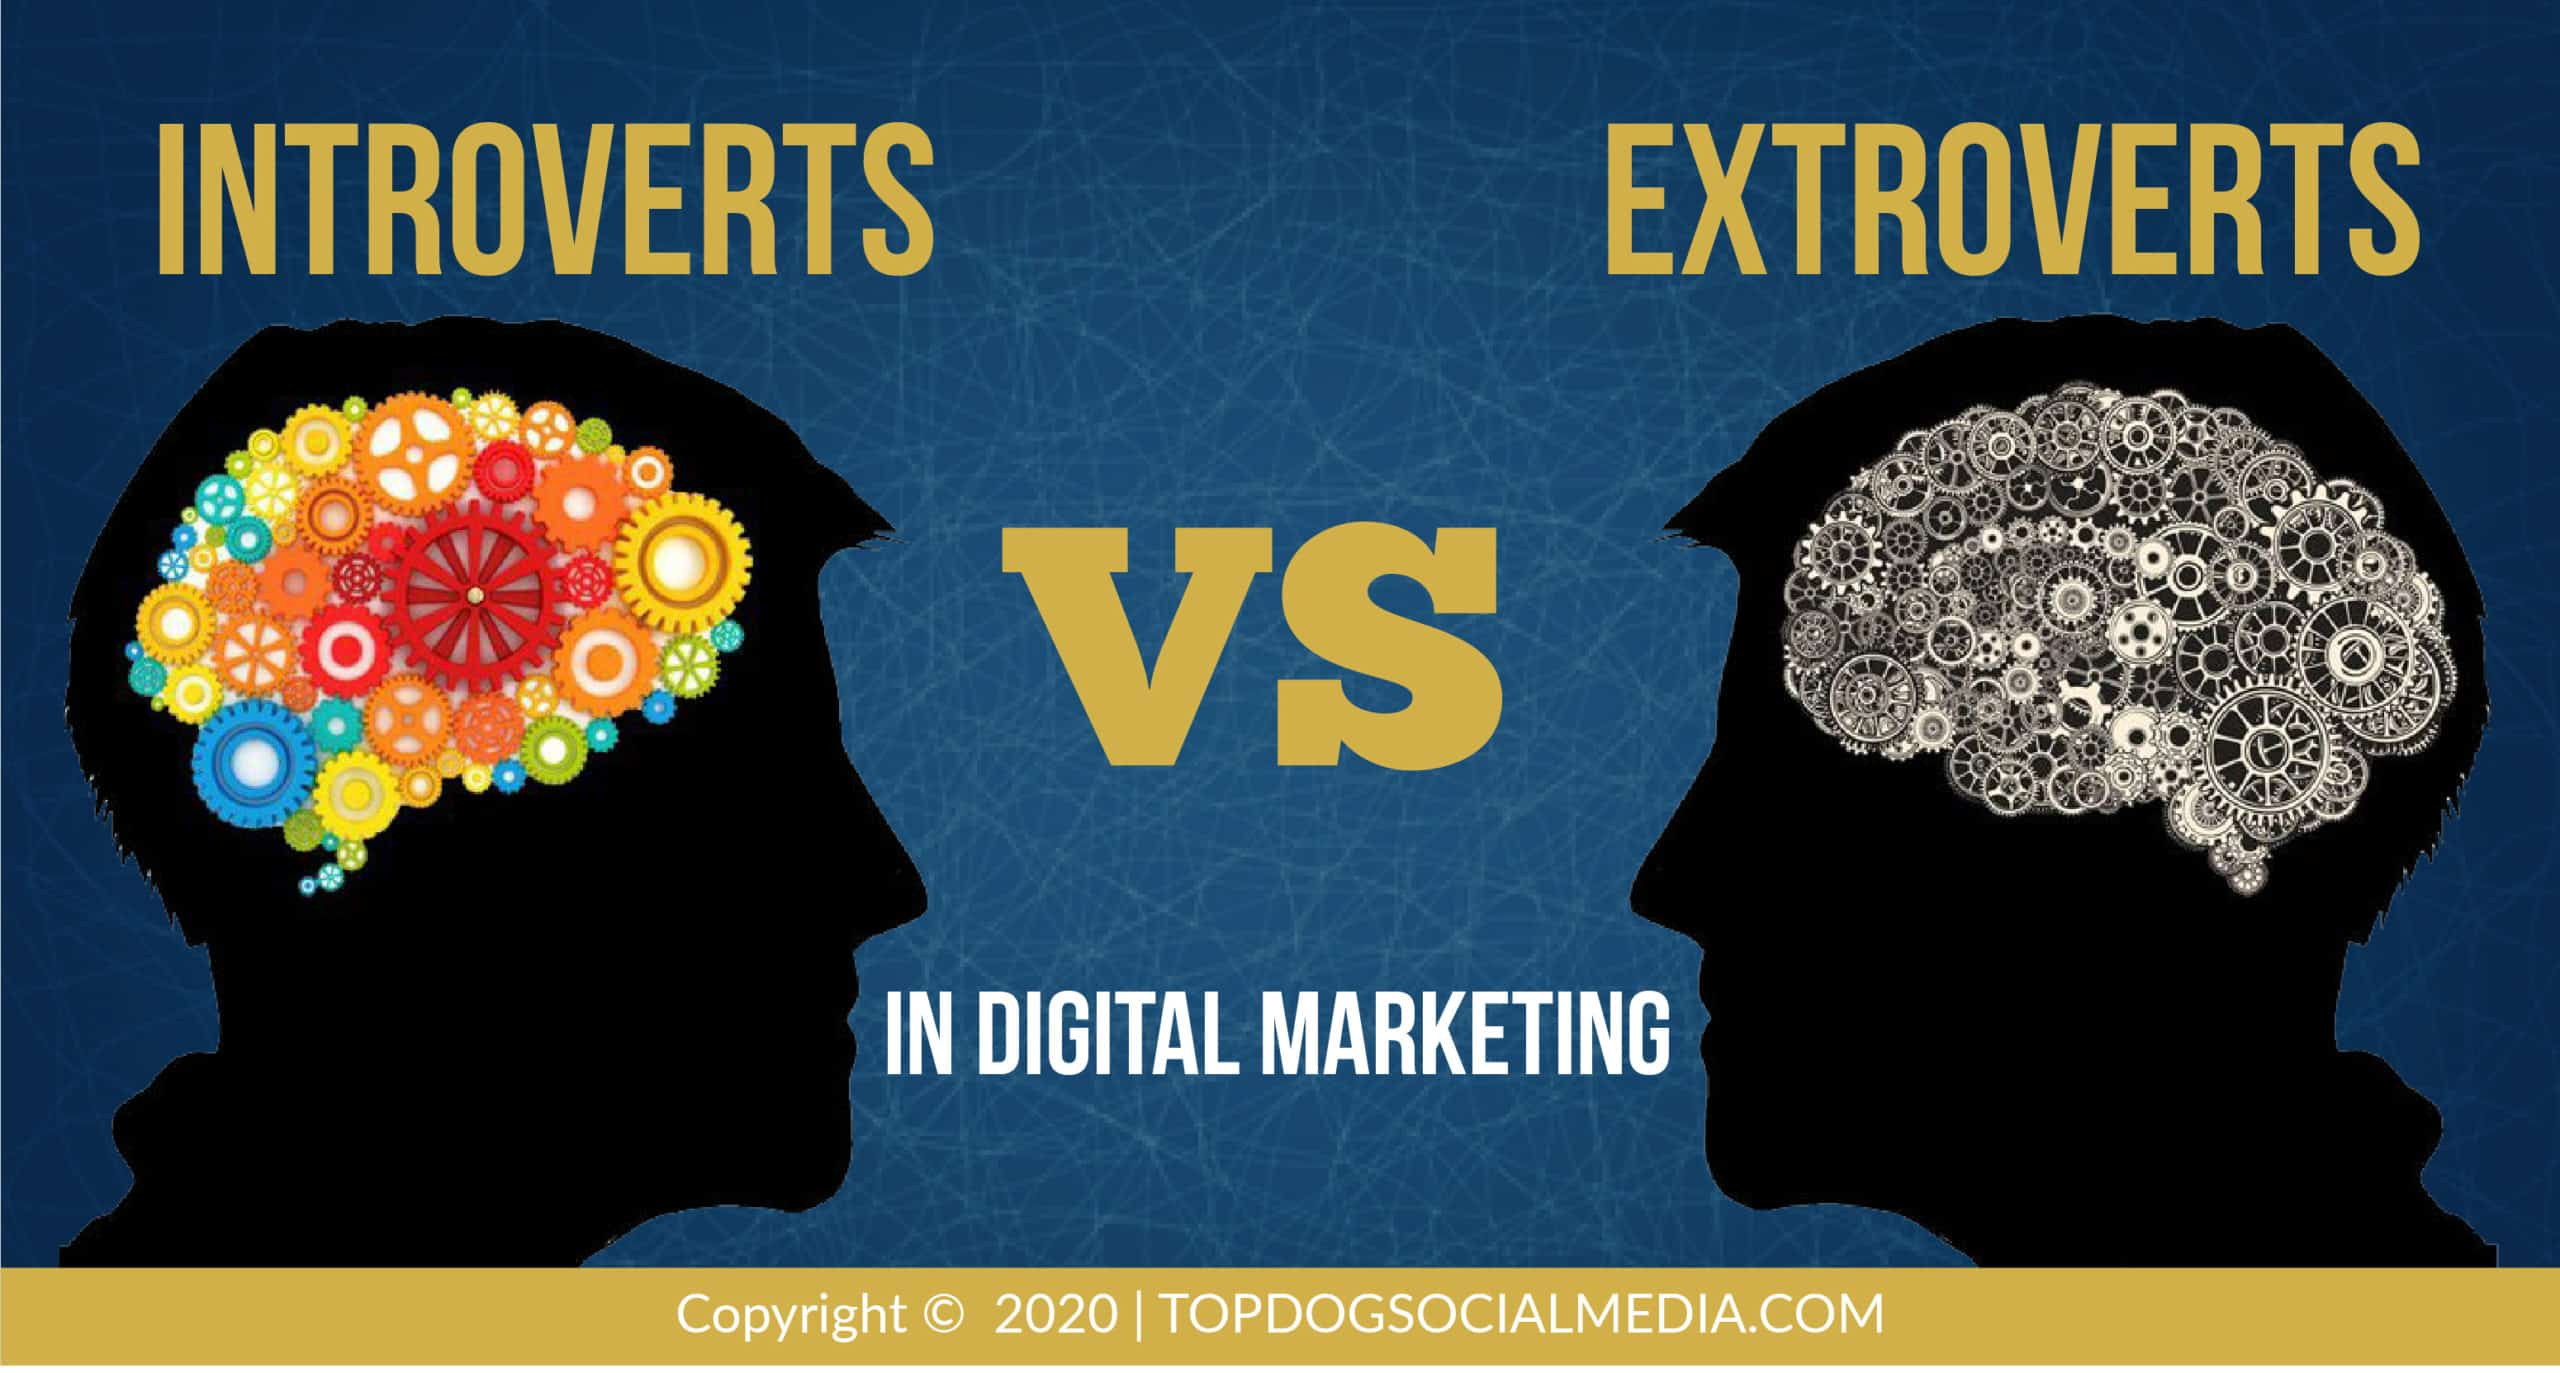 Introvert vs. Extrovert: Who Is Better at Digital Marketing?